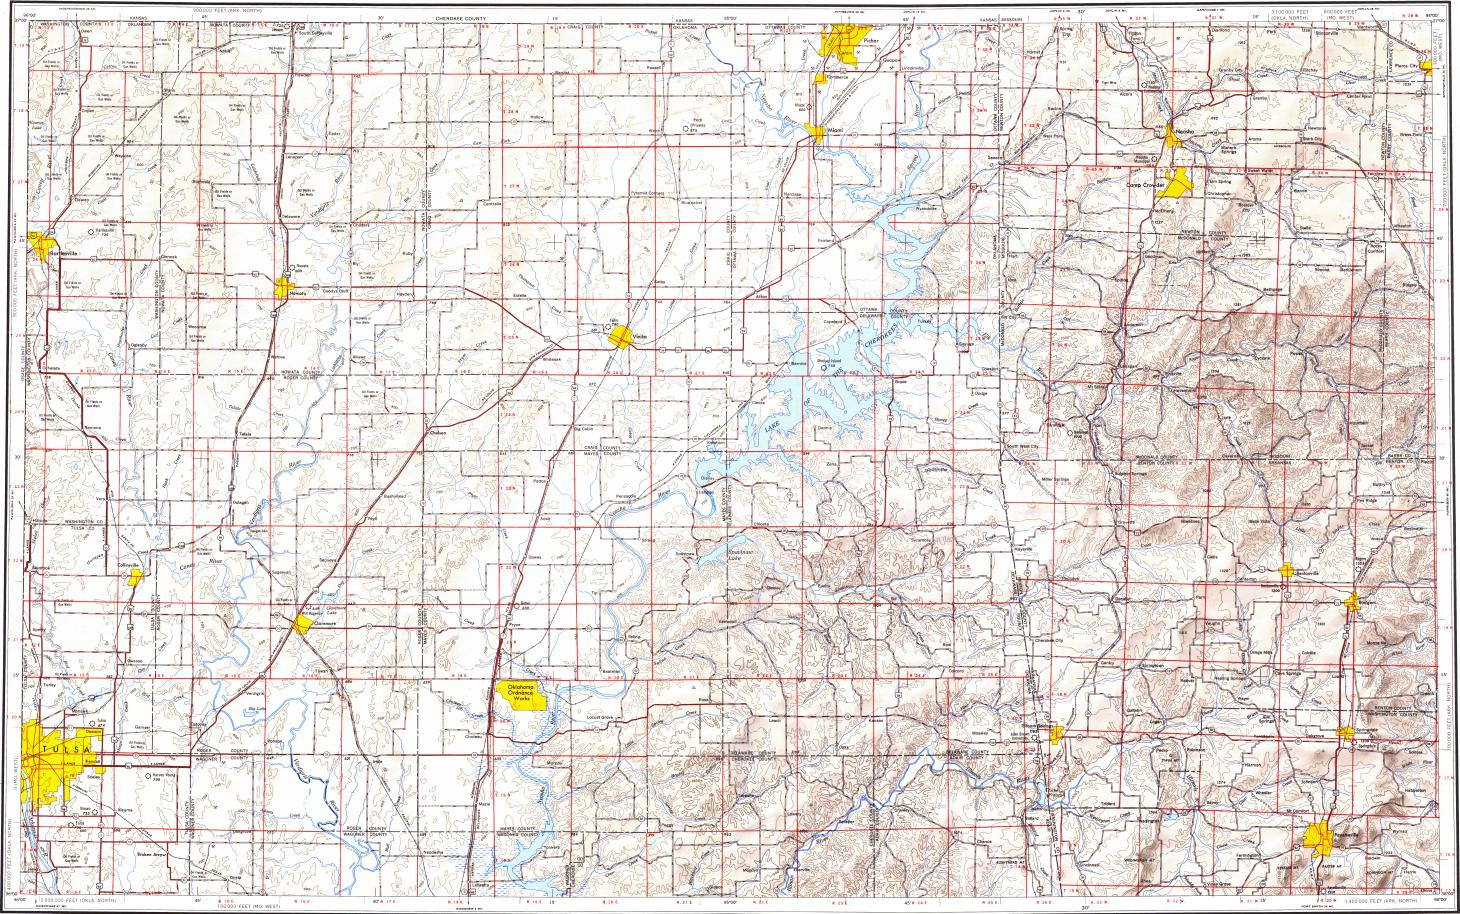 Download topographic map in area of Tulsa, Fayetteville, Broken ...